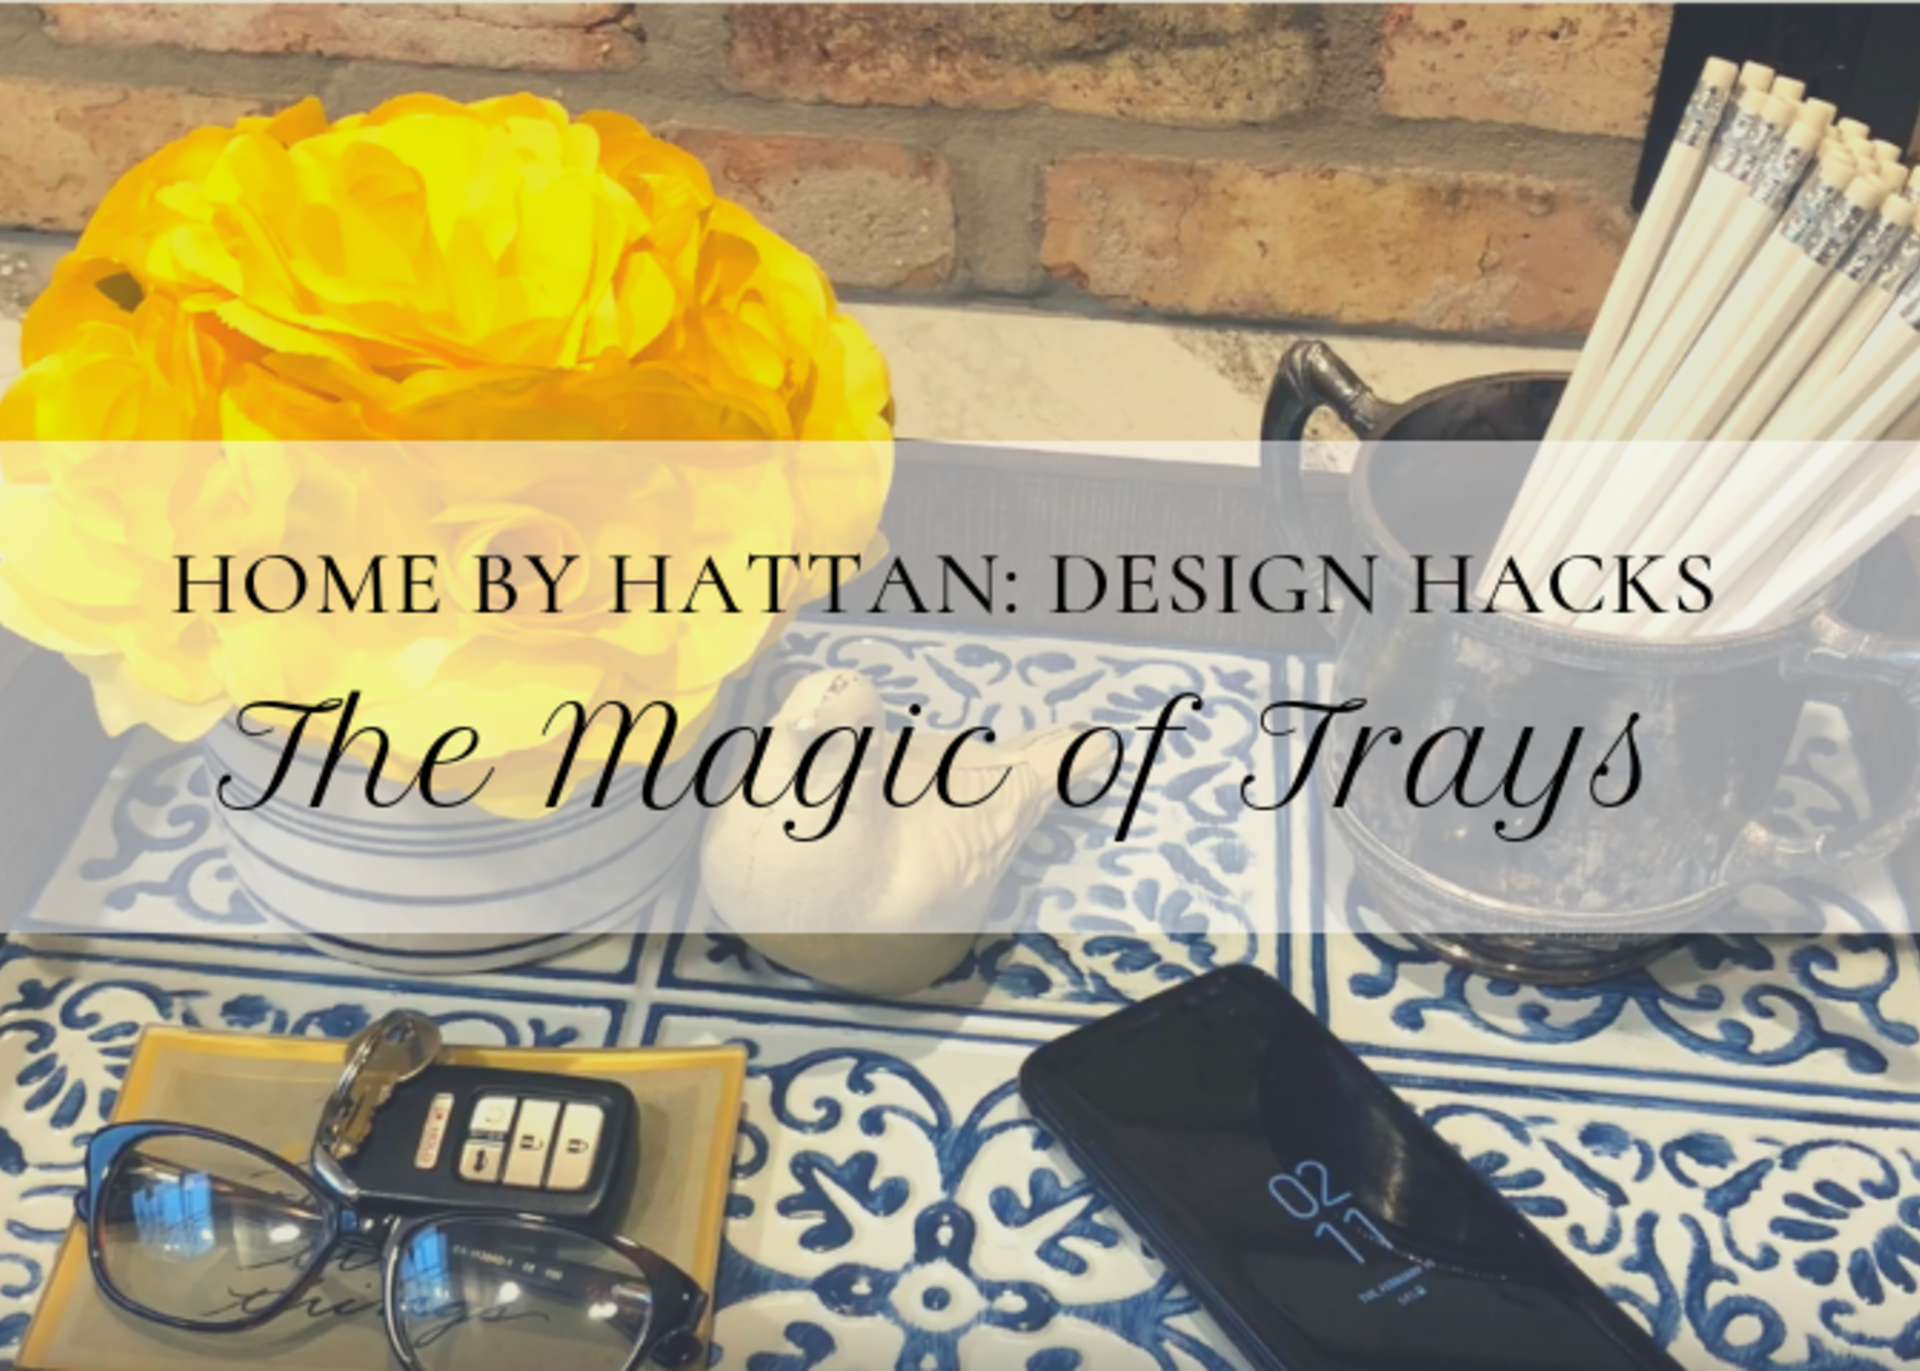 Home by Hattan: The Magic of Trays